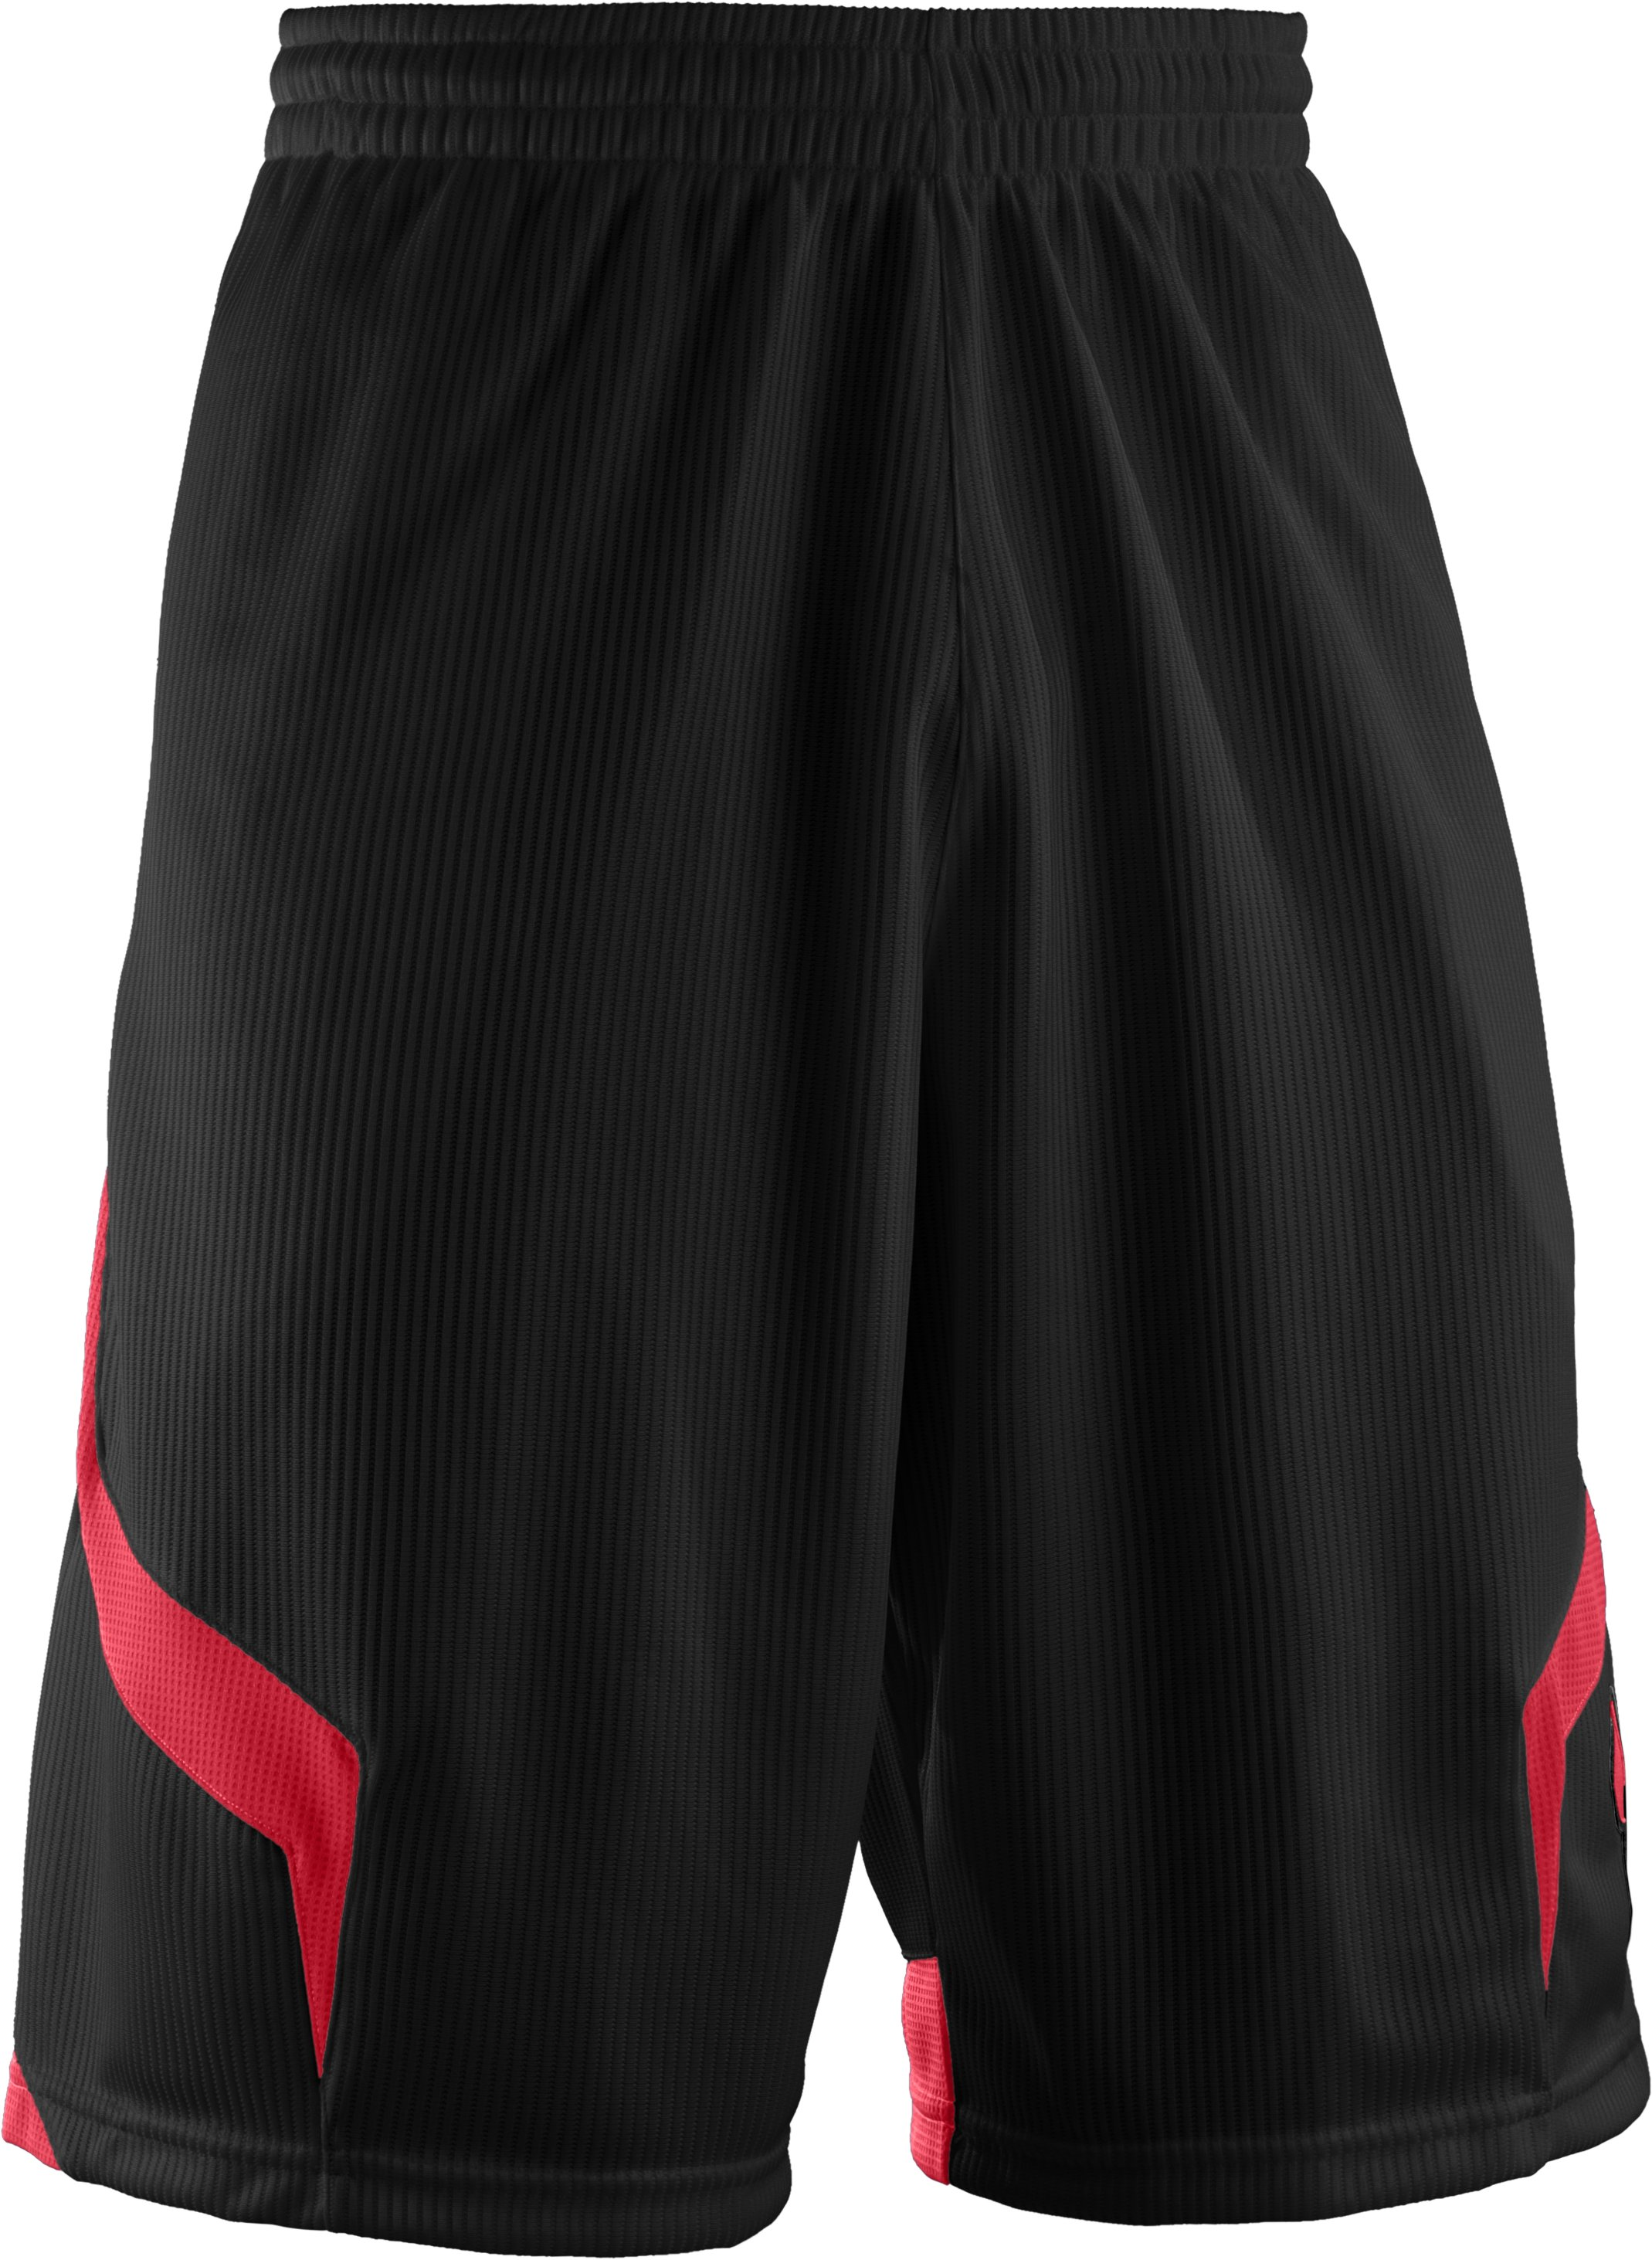 "Men's UA Valkyrie 12"" Basketball Short, Black"